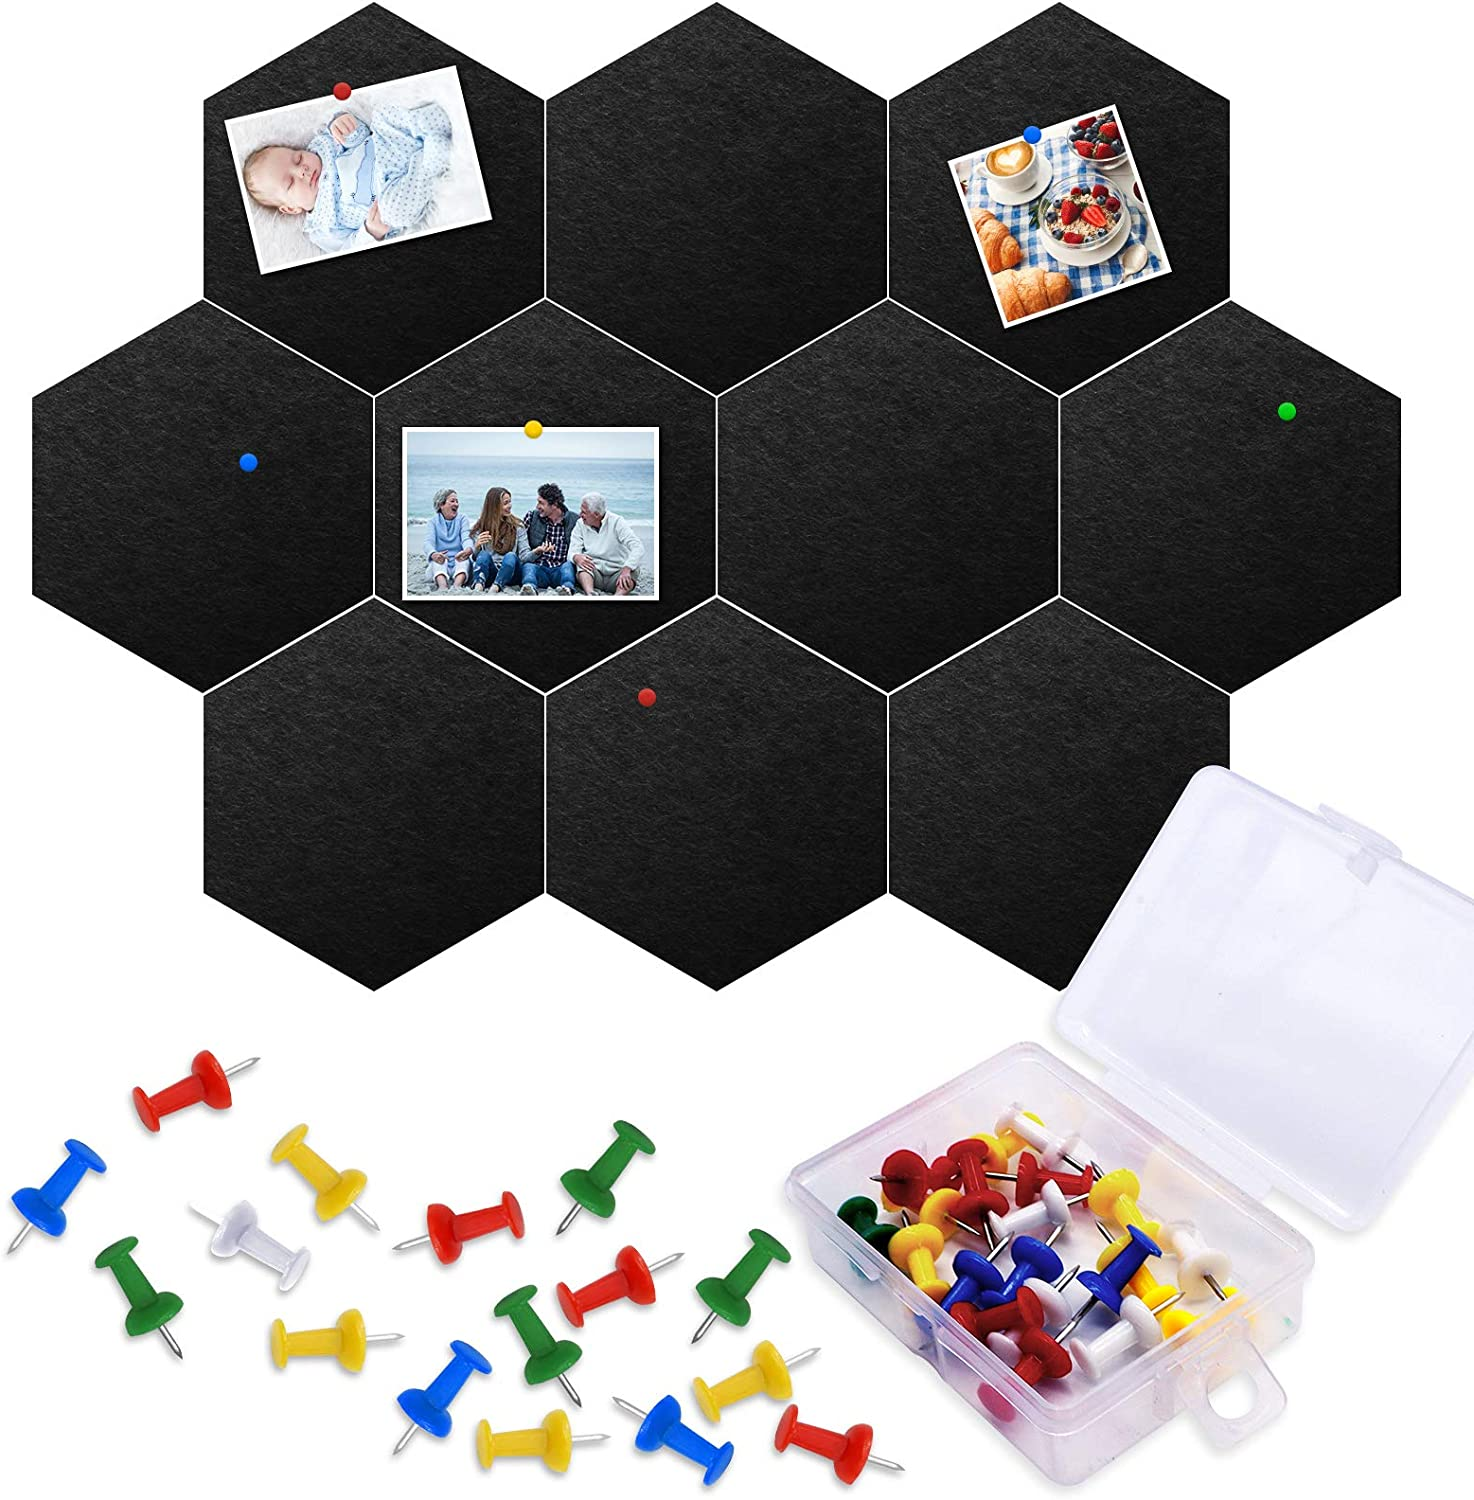 10 Packs Pin Board Hexagon Cork Board Tiles, Owlbbabies Self-Adhesive Bulletin Board Memo Board Notice Board with 20 Pack Color Push Pins for Home Office Classroom Wall Decorations, 5.9 x 7 inches